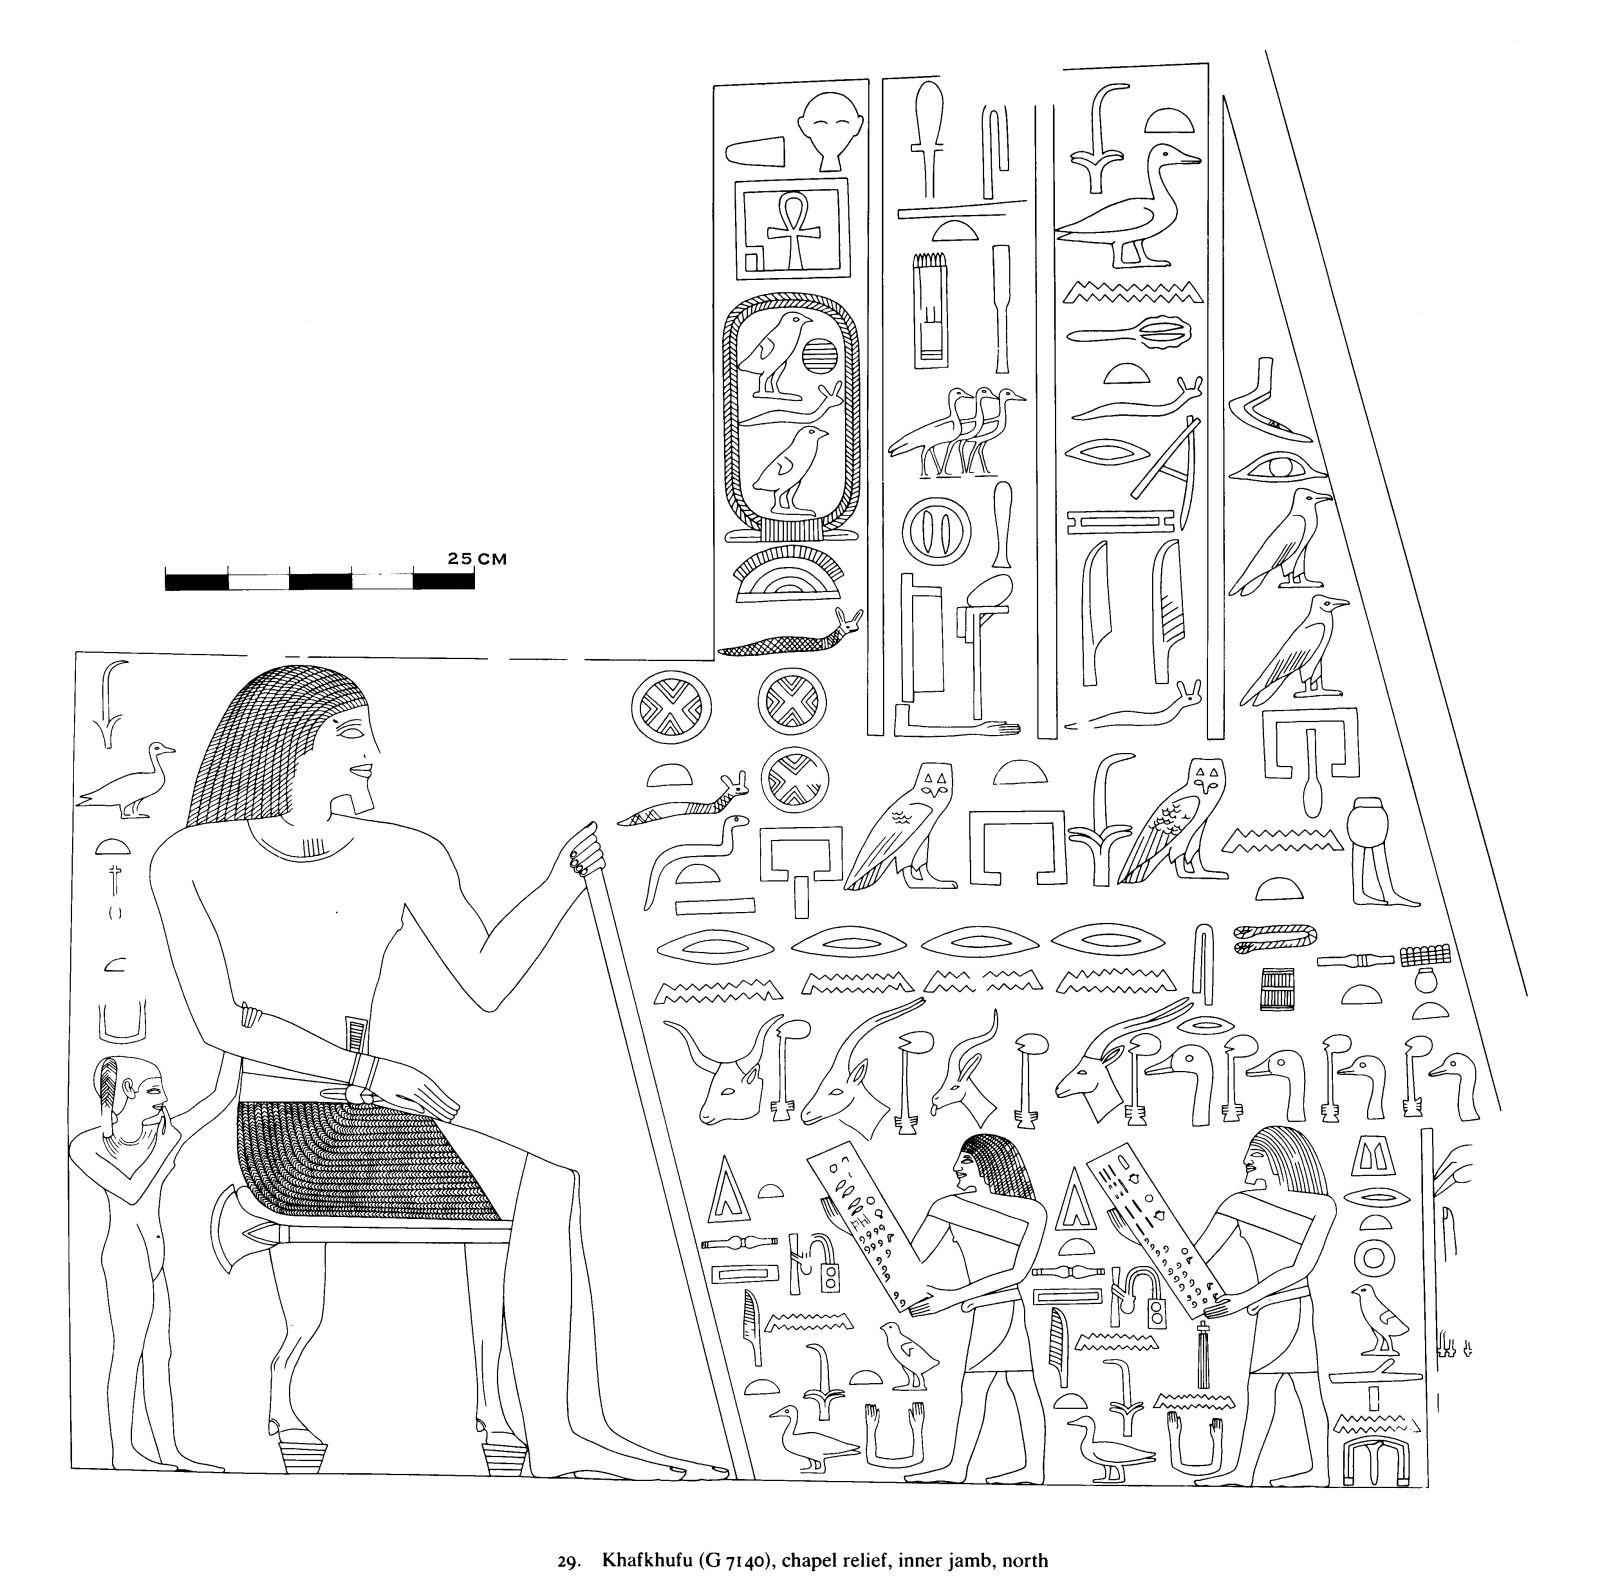 Drawings: G 7140: relief from chapel, inner jamb